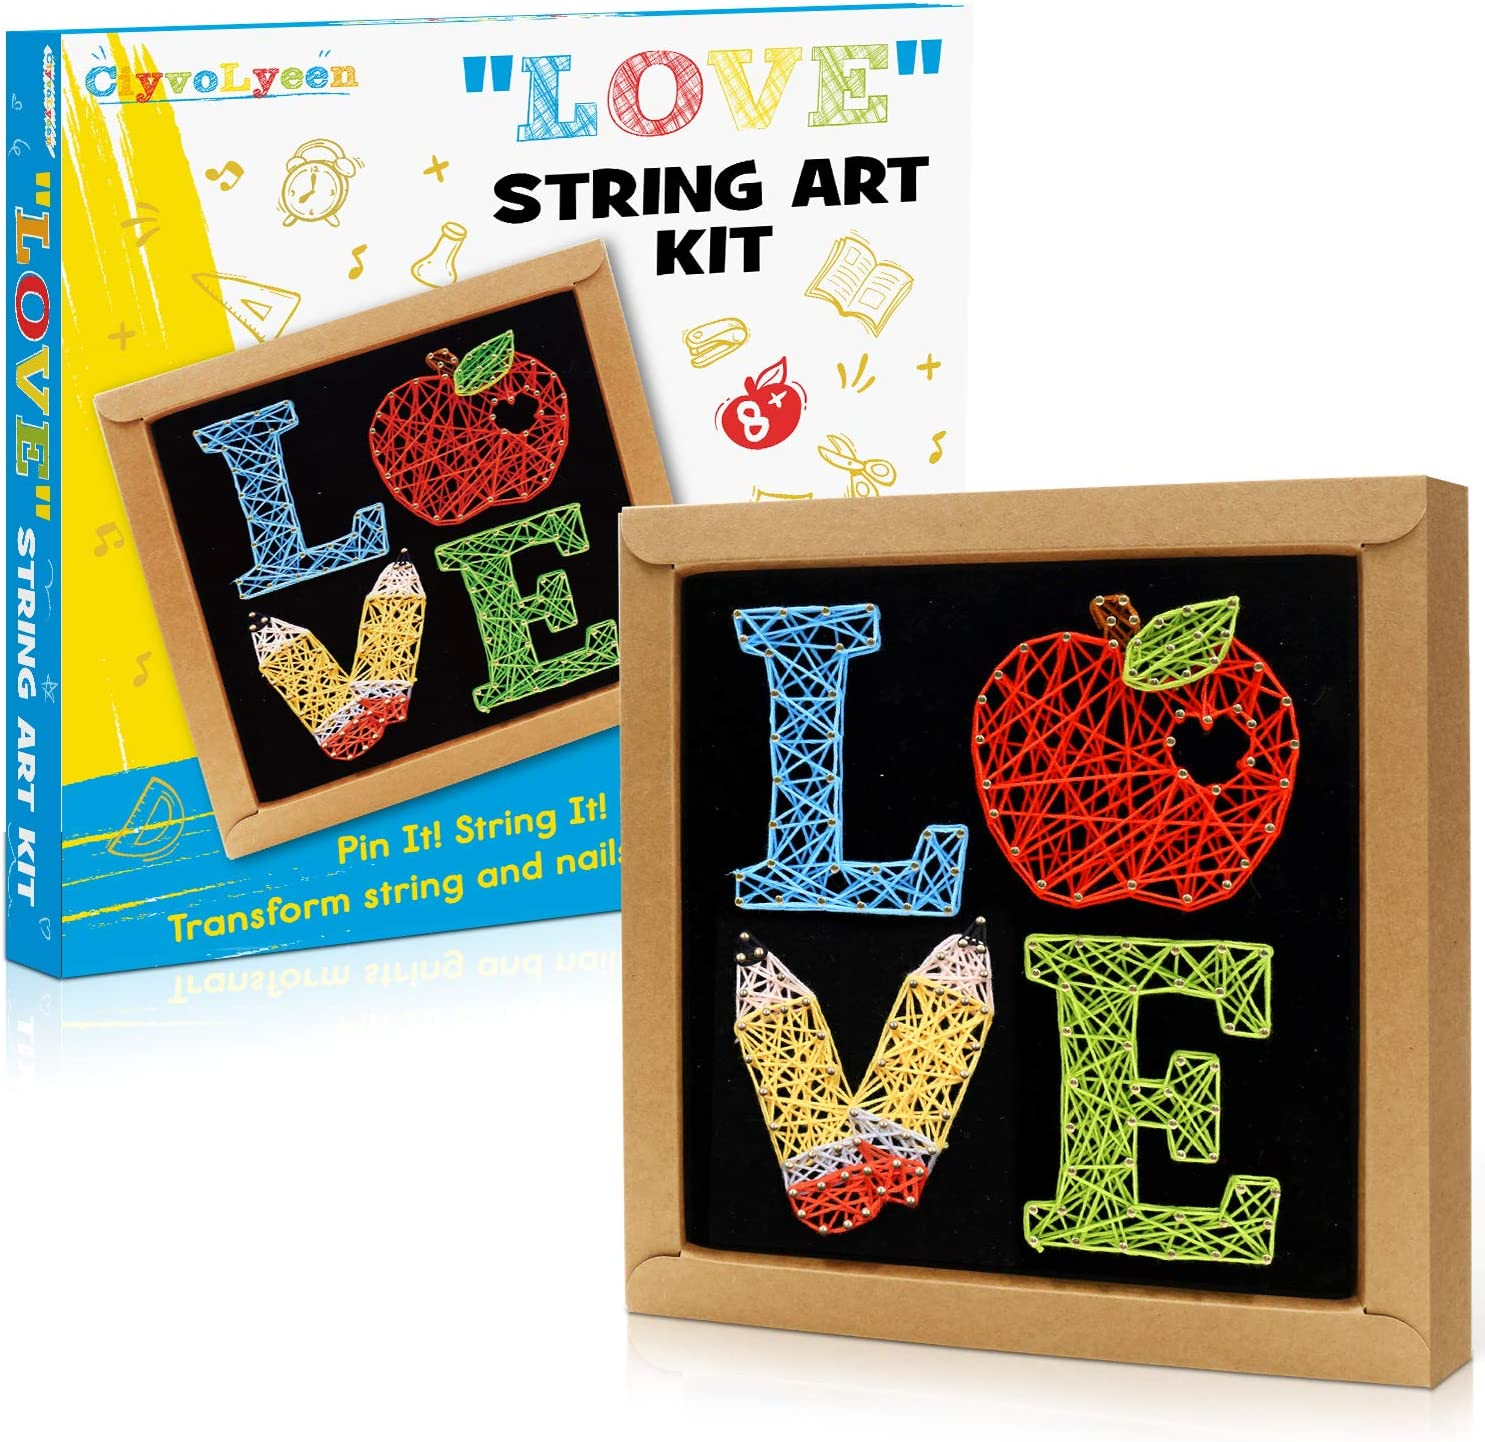 String Art Kit Teacher Appreciation Gifts Apple Pencil Love Craft Kit for Beginner Kids Make Your Own Educational Art Craft Project Supplies Back to School New School Year Classroom Decorations